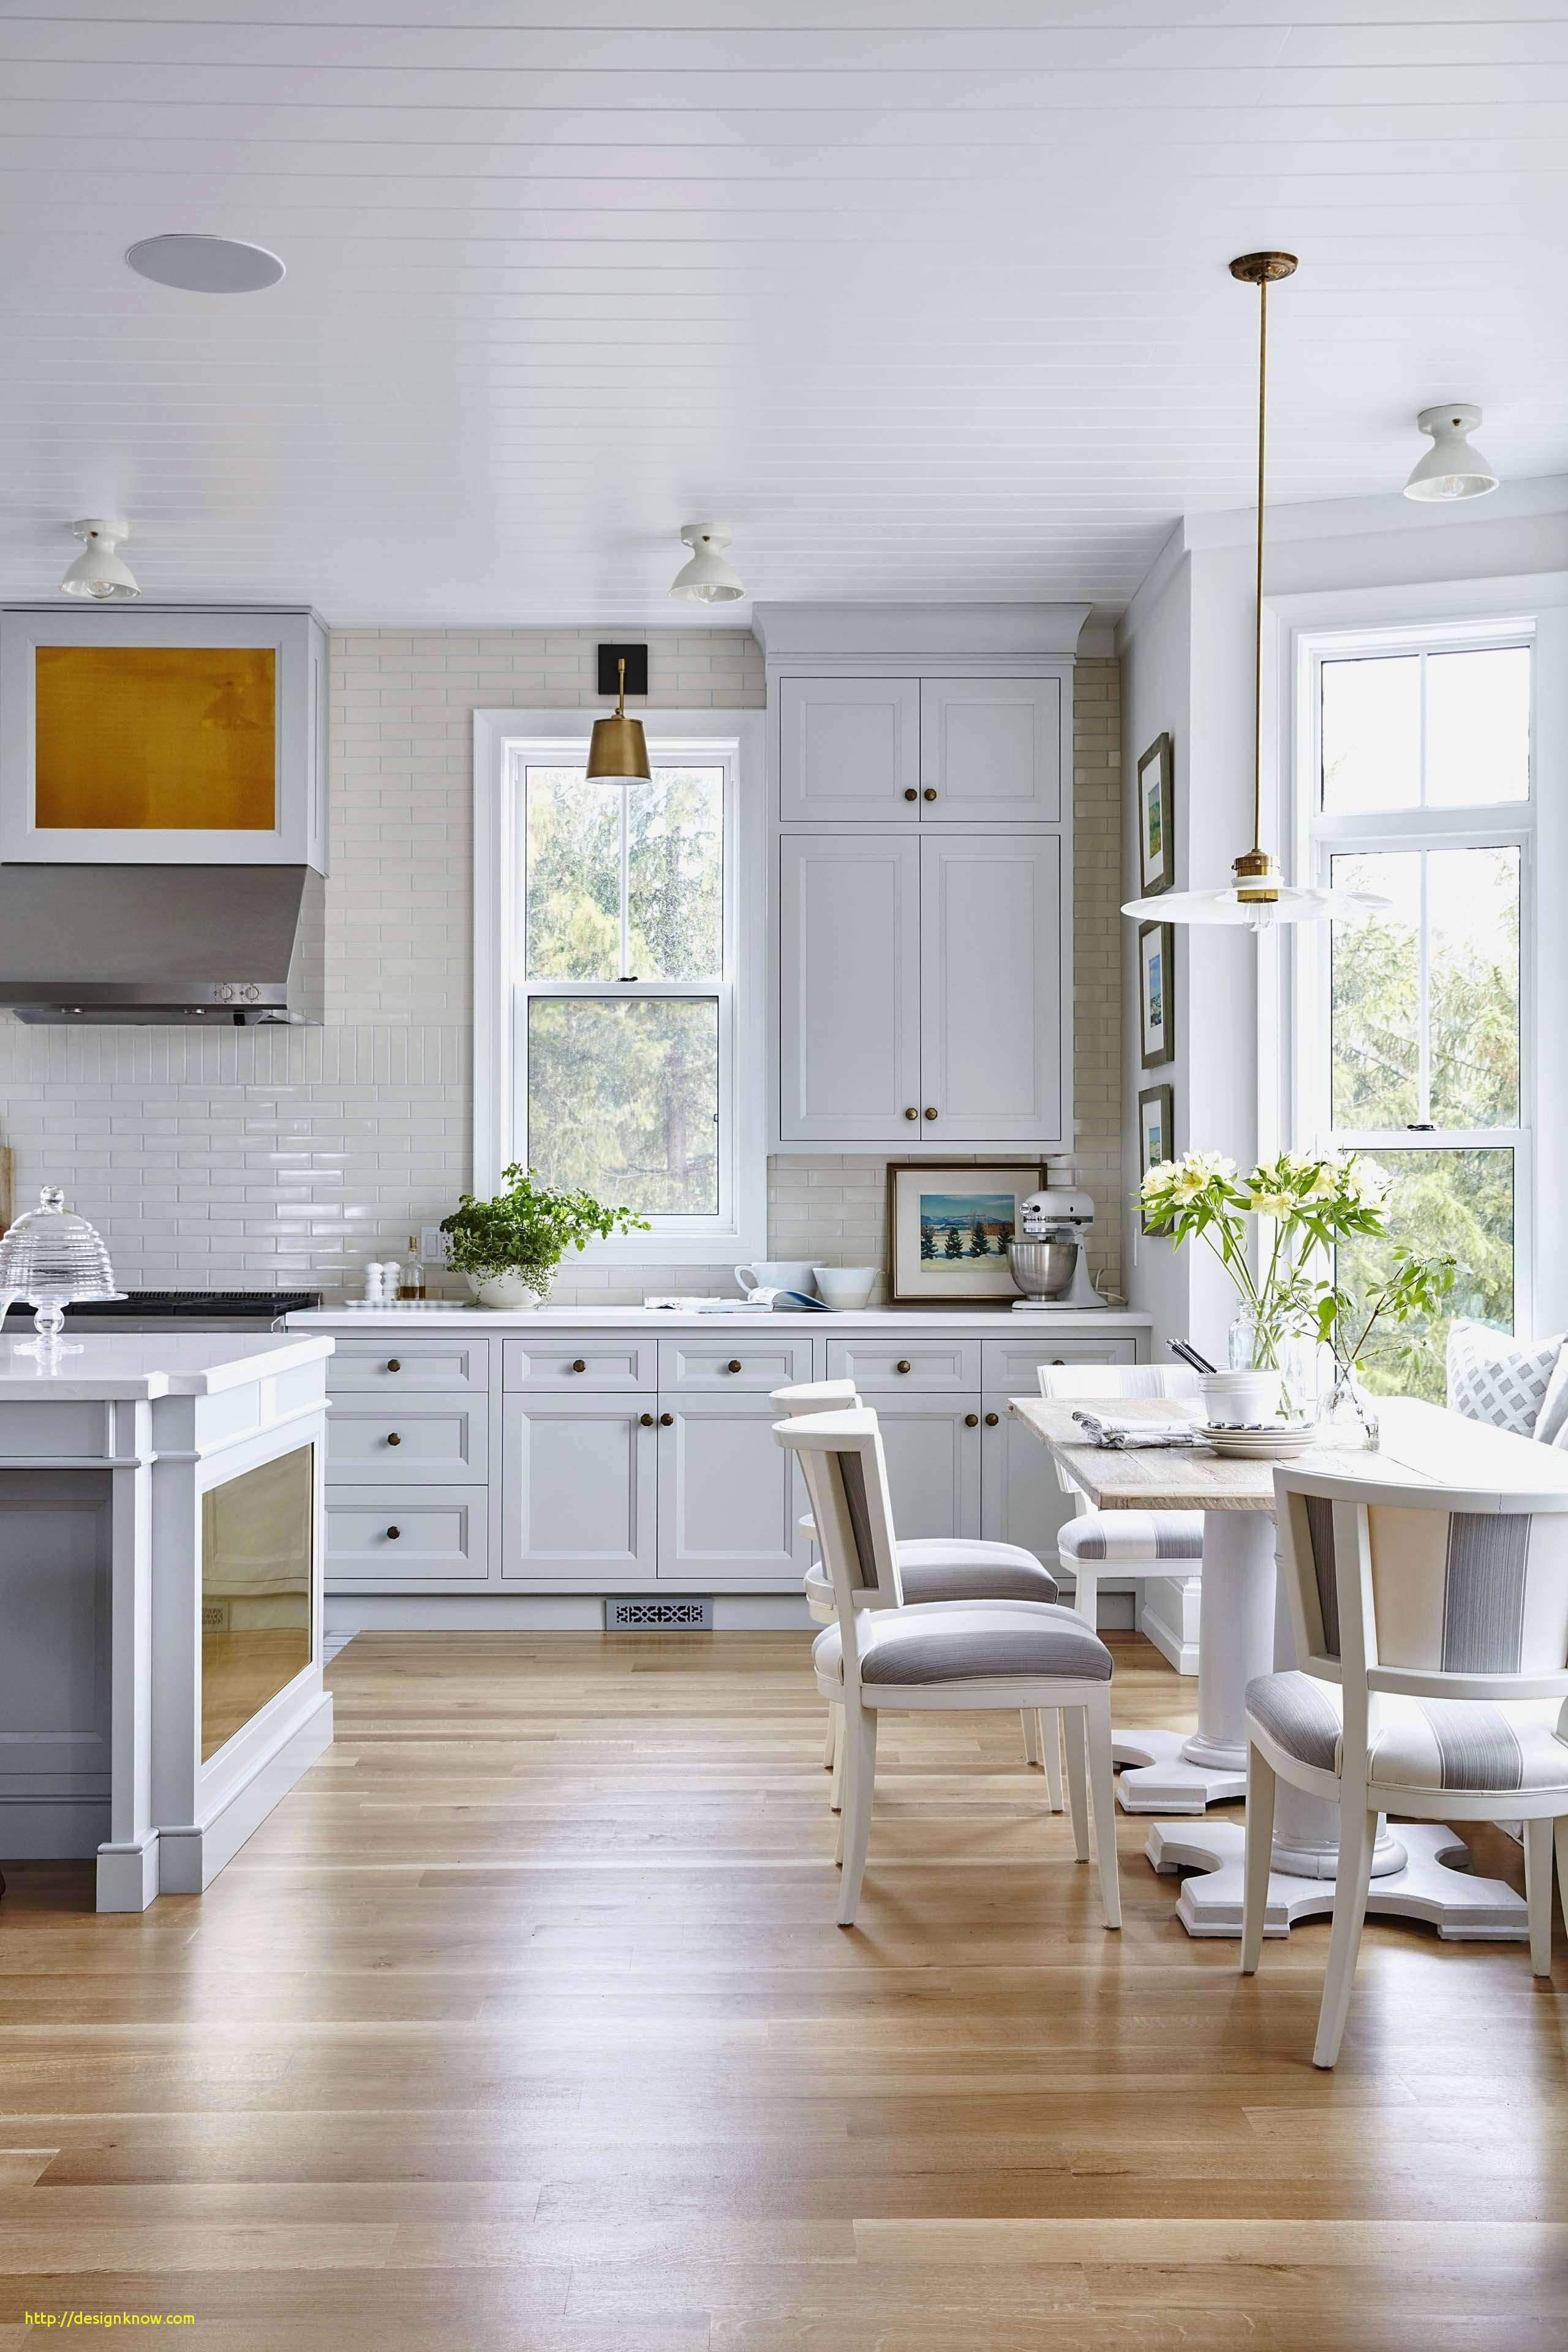 storage ideas for small kitchens awesome small kitchen wall storage solutions good how to design a kitchen of storage ideas for small kitchens